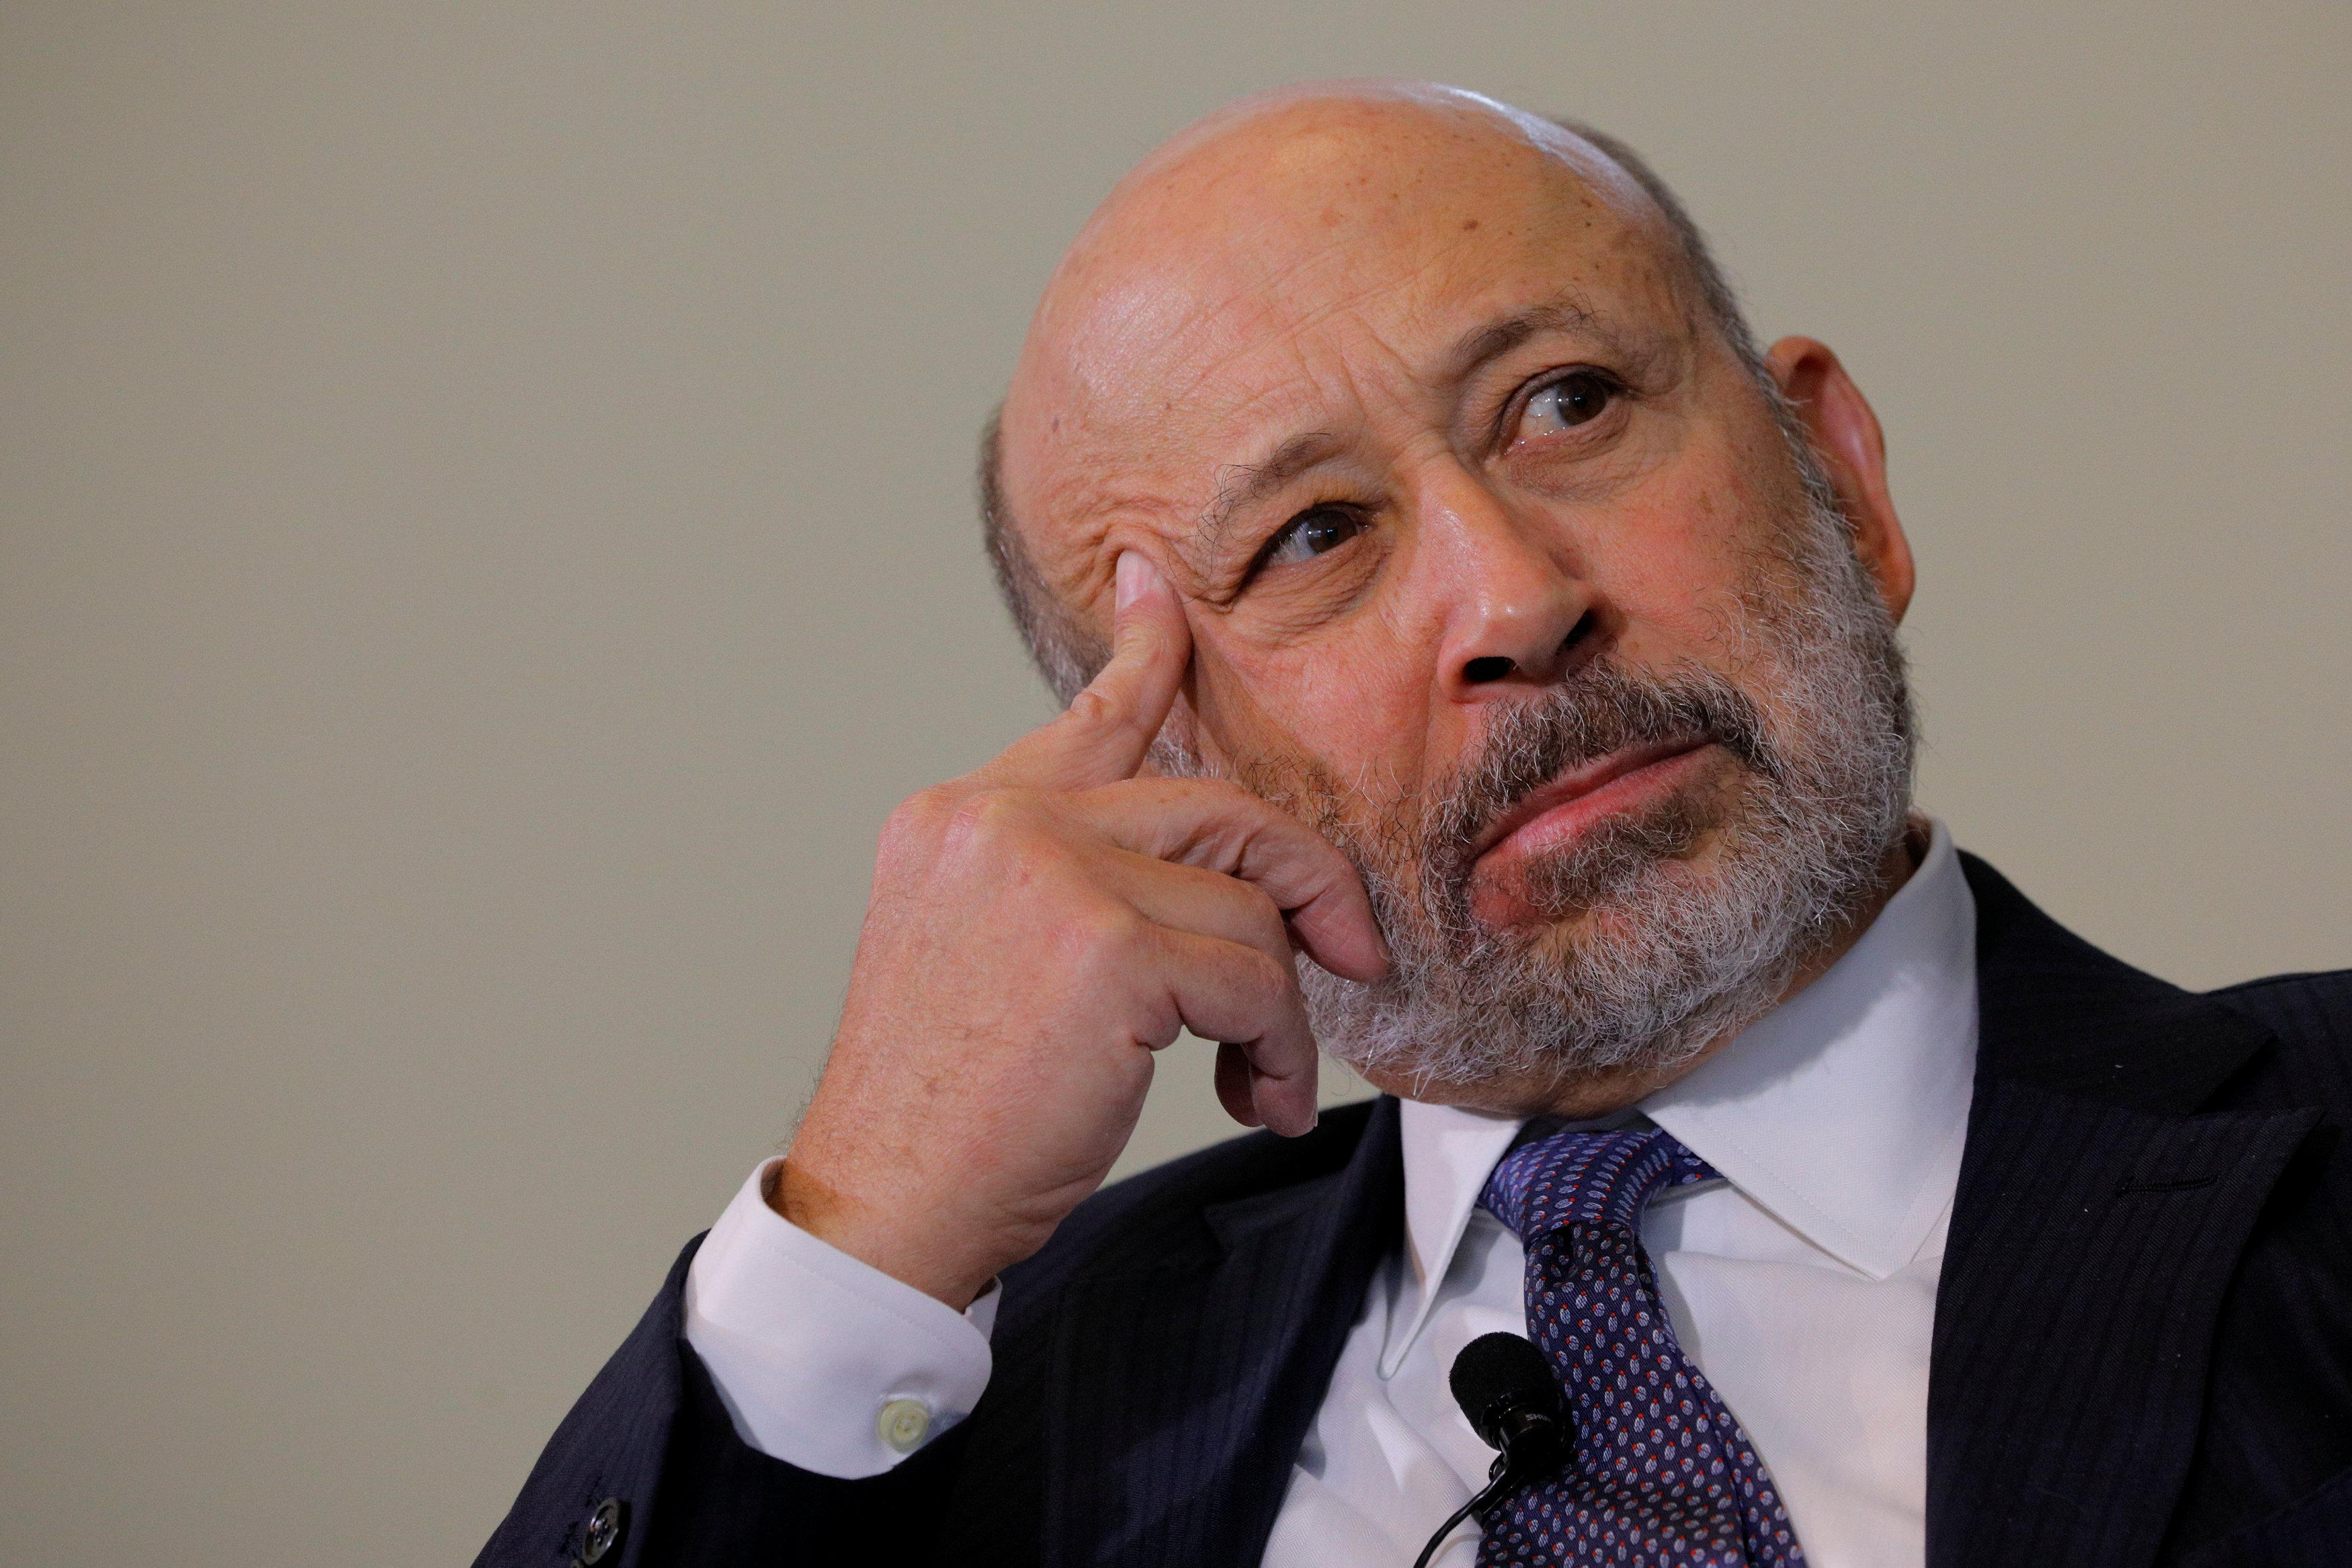 Lloyd Blankfein, CEO of Goldman Sachs, listens to a question at the Boston College Chief Executives Club luncheon in Boston, MA, U.S., March 22, 2018. Brian Snyder